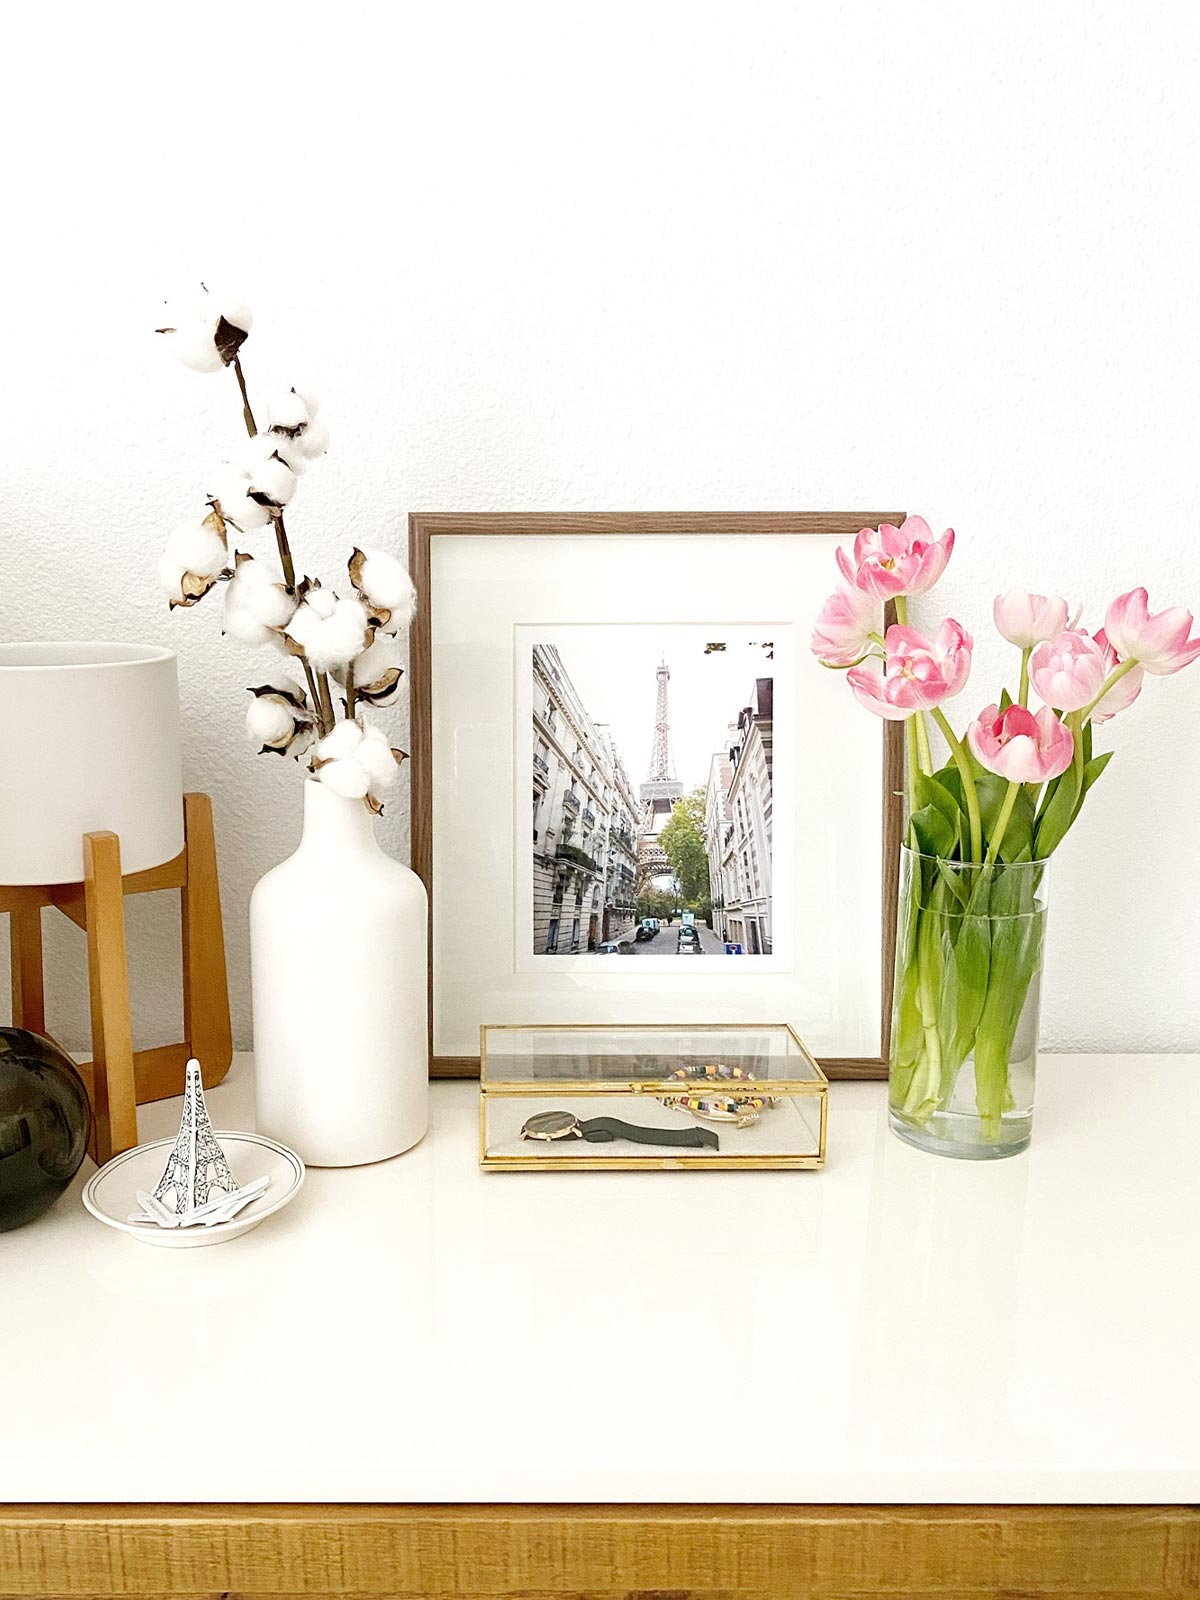 Image 1: Artifact Uprising Metal Tabletop Frame on a dresser next to vibrant flowers.